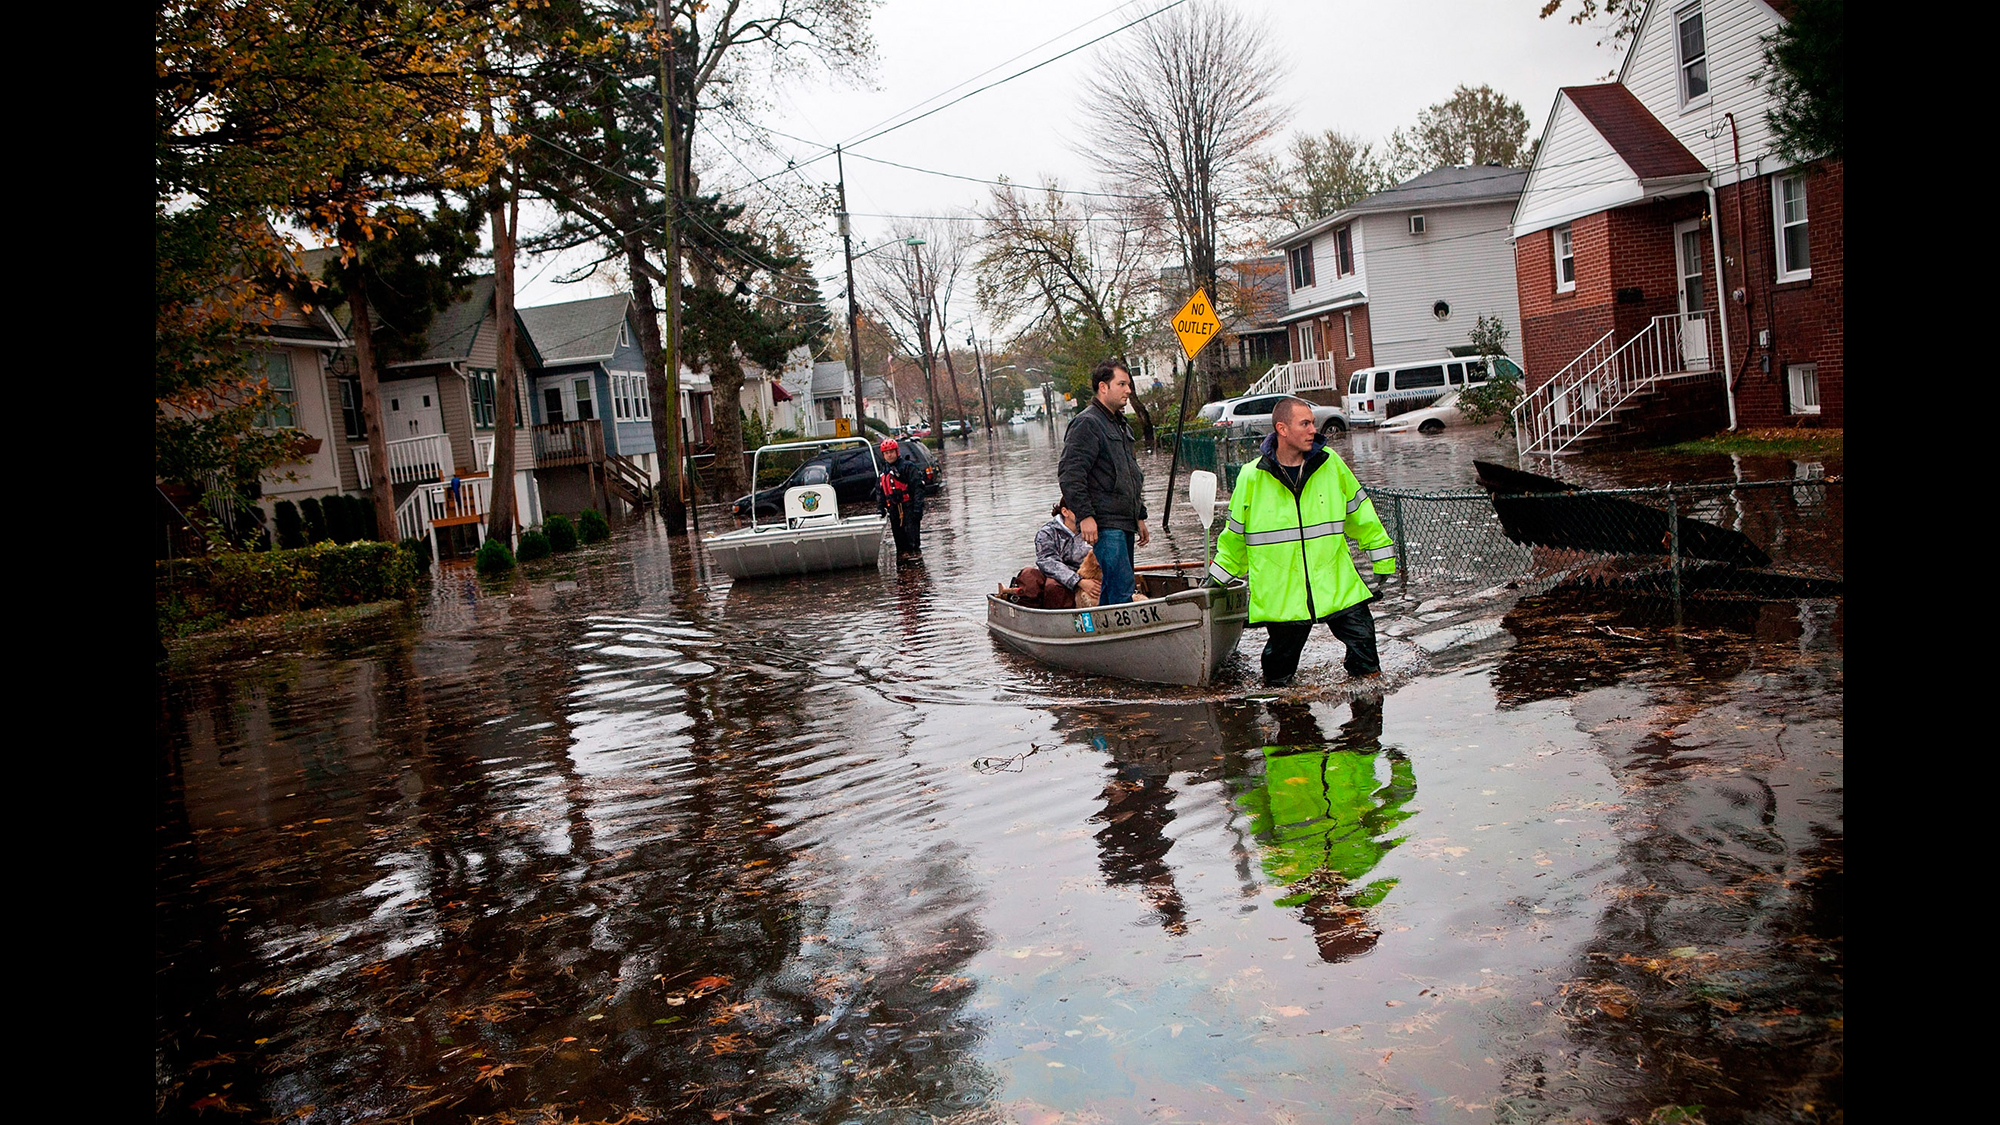 Flood risk is growing for US homeowners due to climate change. Current insurance rates greatly underestimate the threat, a new report finds